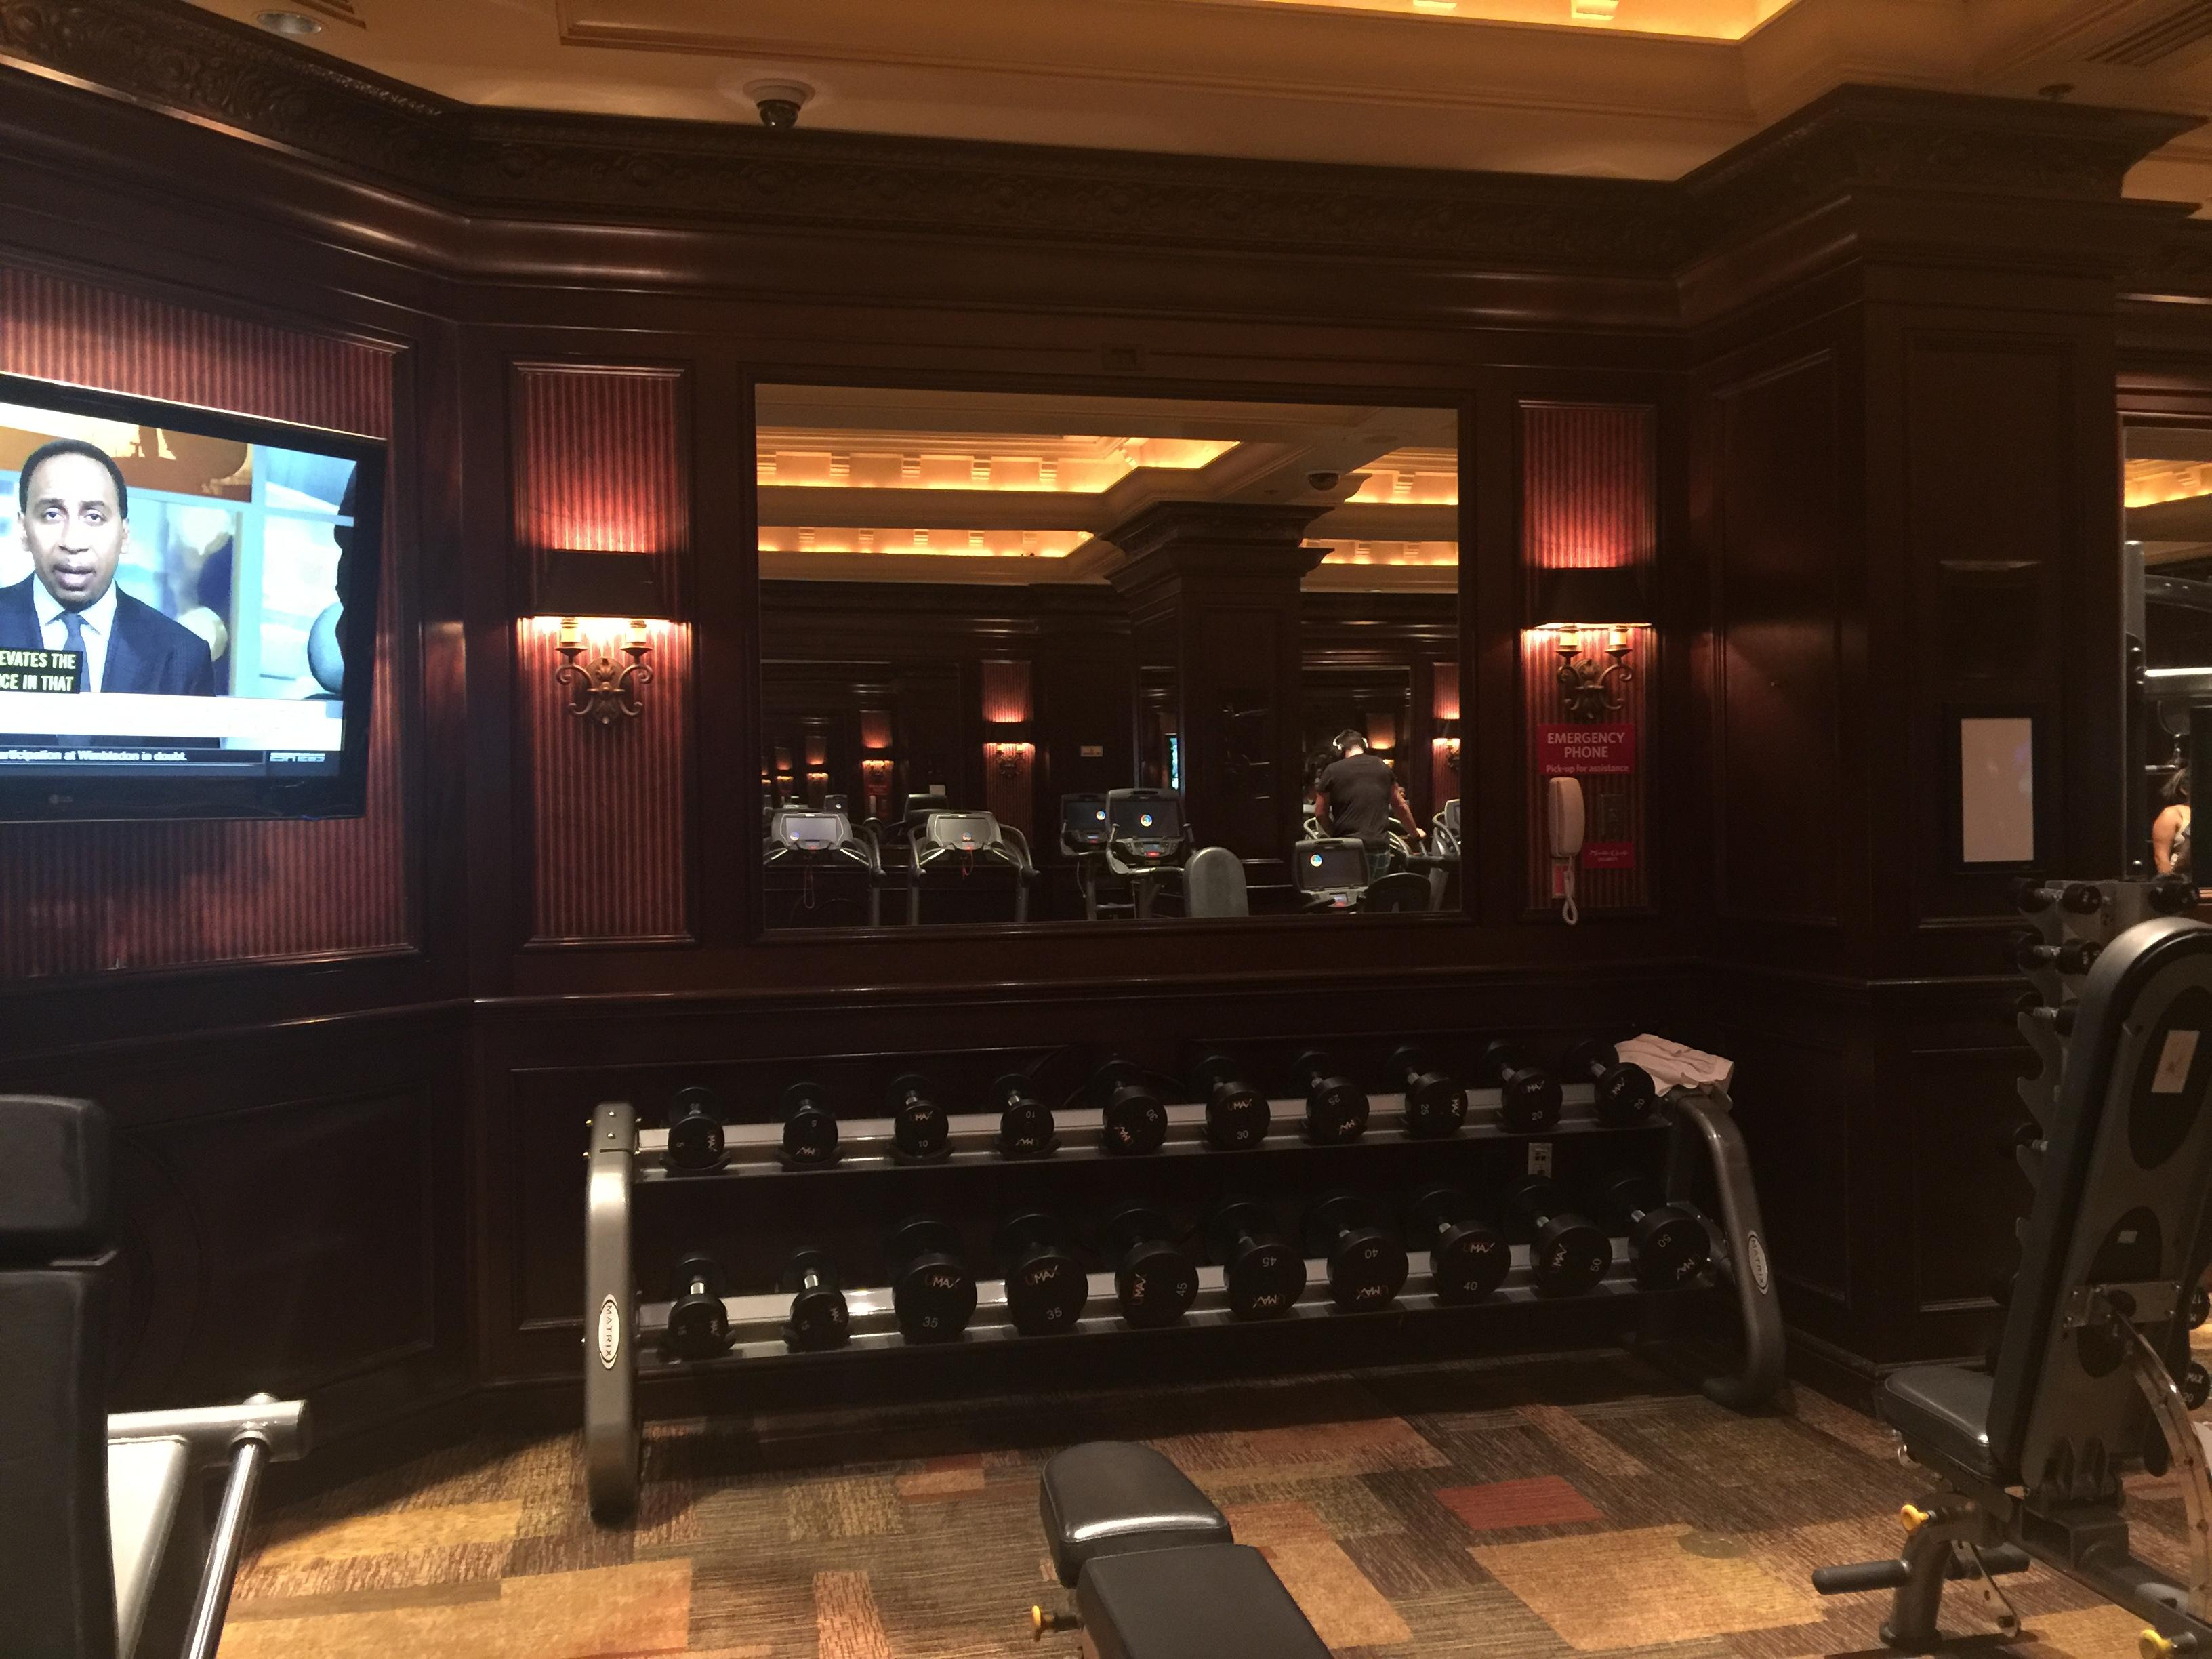 Gym at the Monte Carlo Casino first floor by sports book. Las Vegas